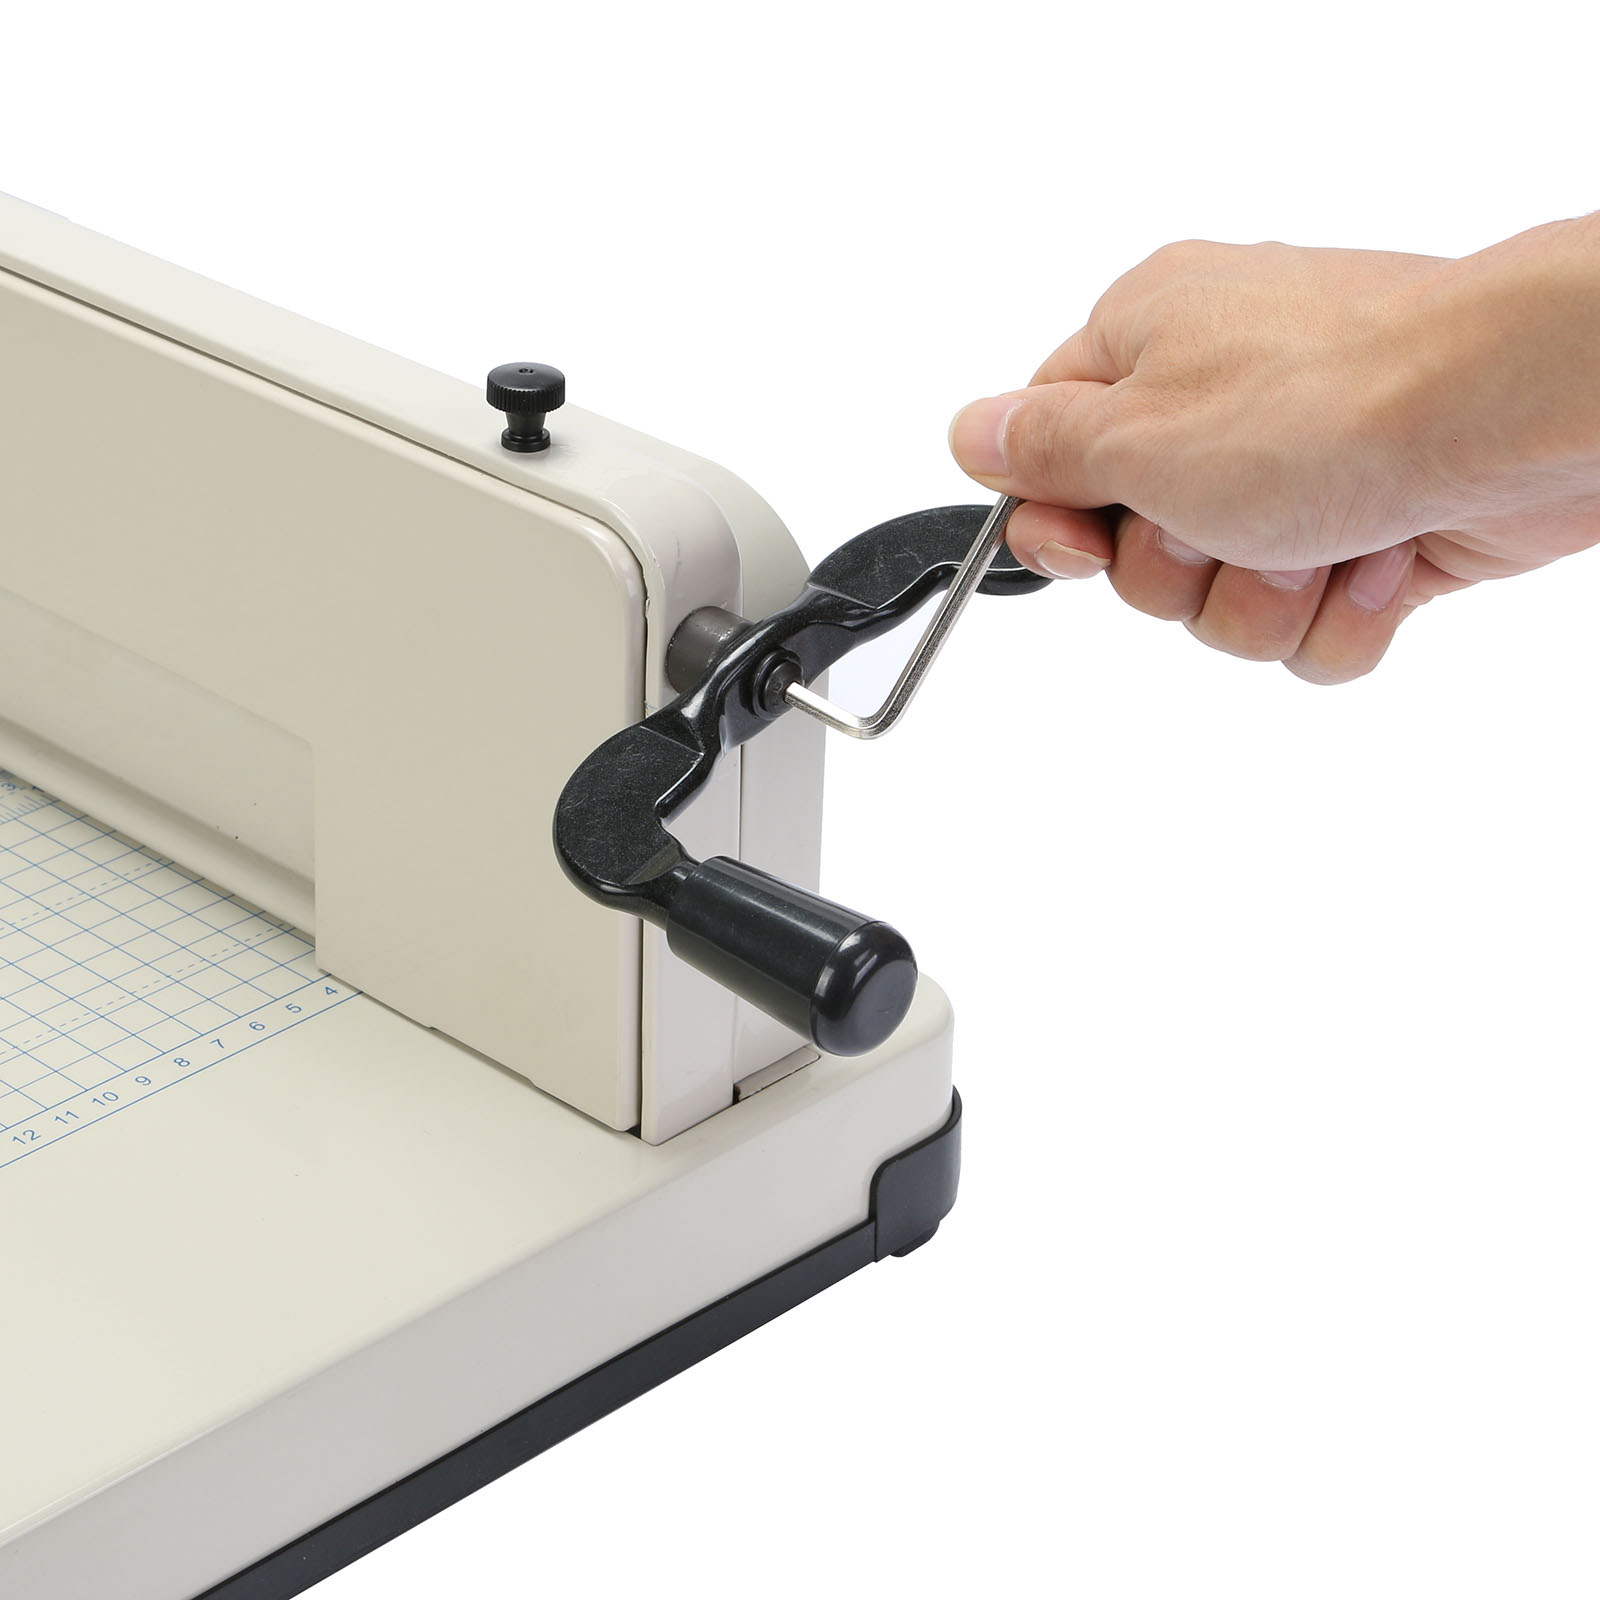 industrial paper cutter Uline stocks over 29,000 shipping boxes, packing materials and mailing supplies same day shipping for cardboard shipping boxes, plastic bags, janitorial, retail and shipping supplies.